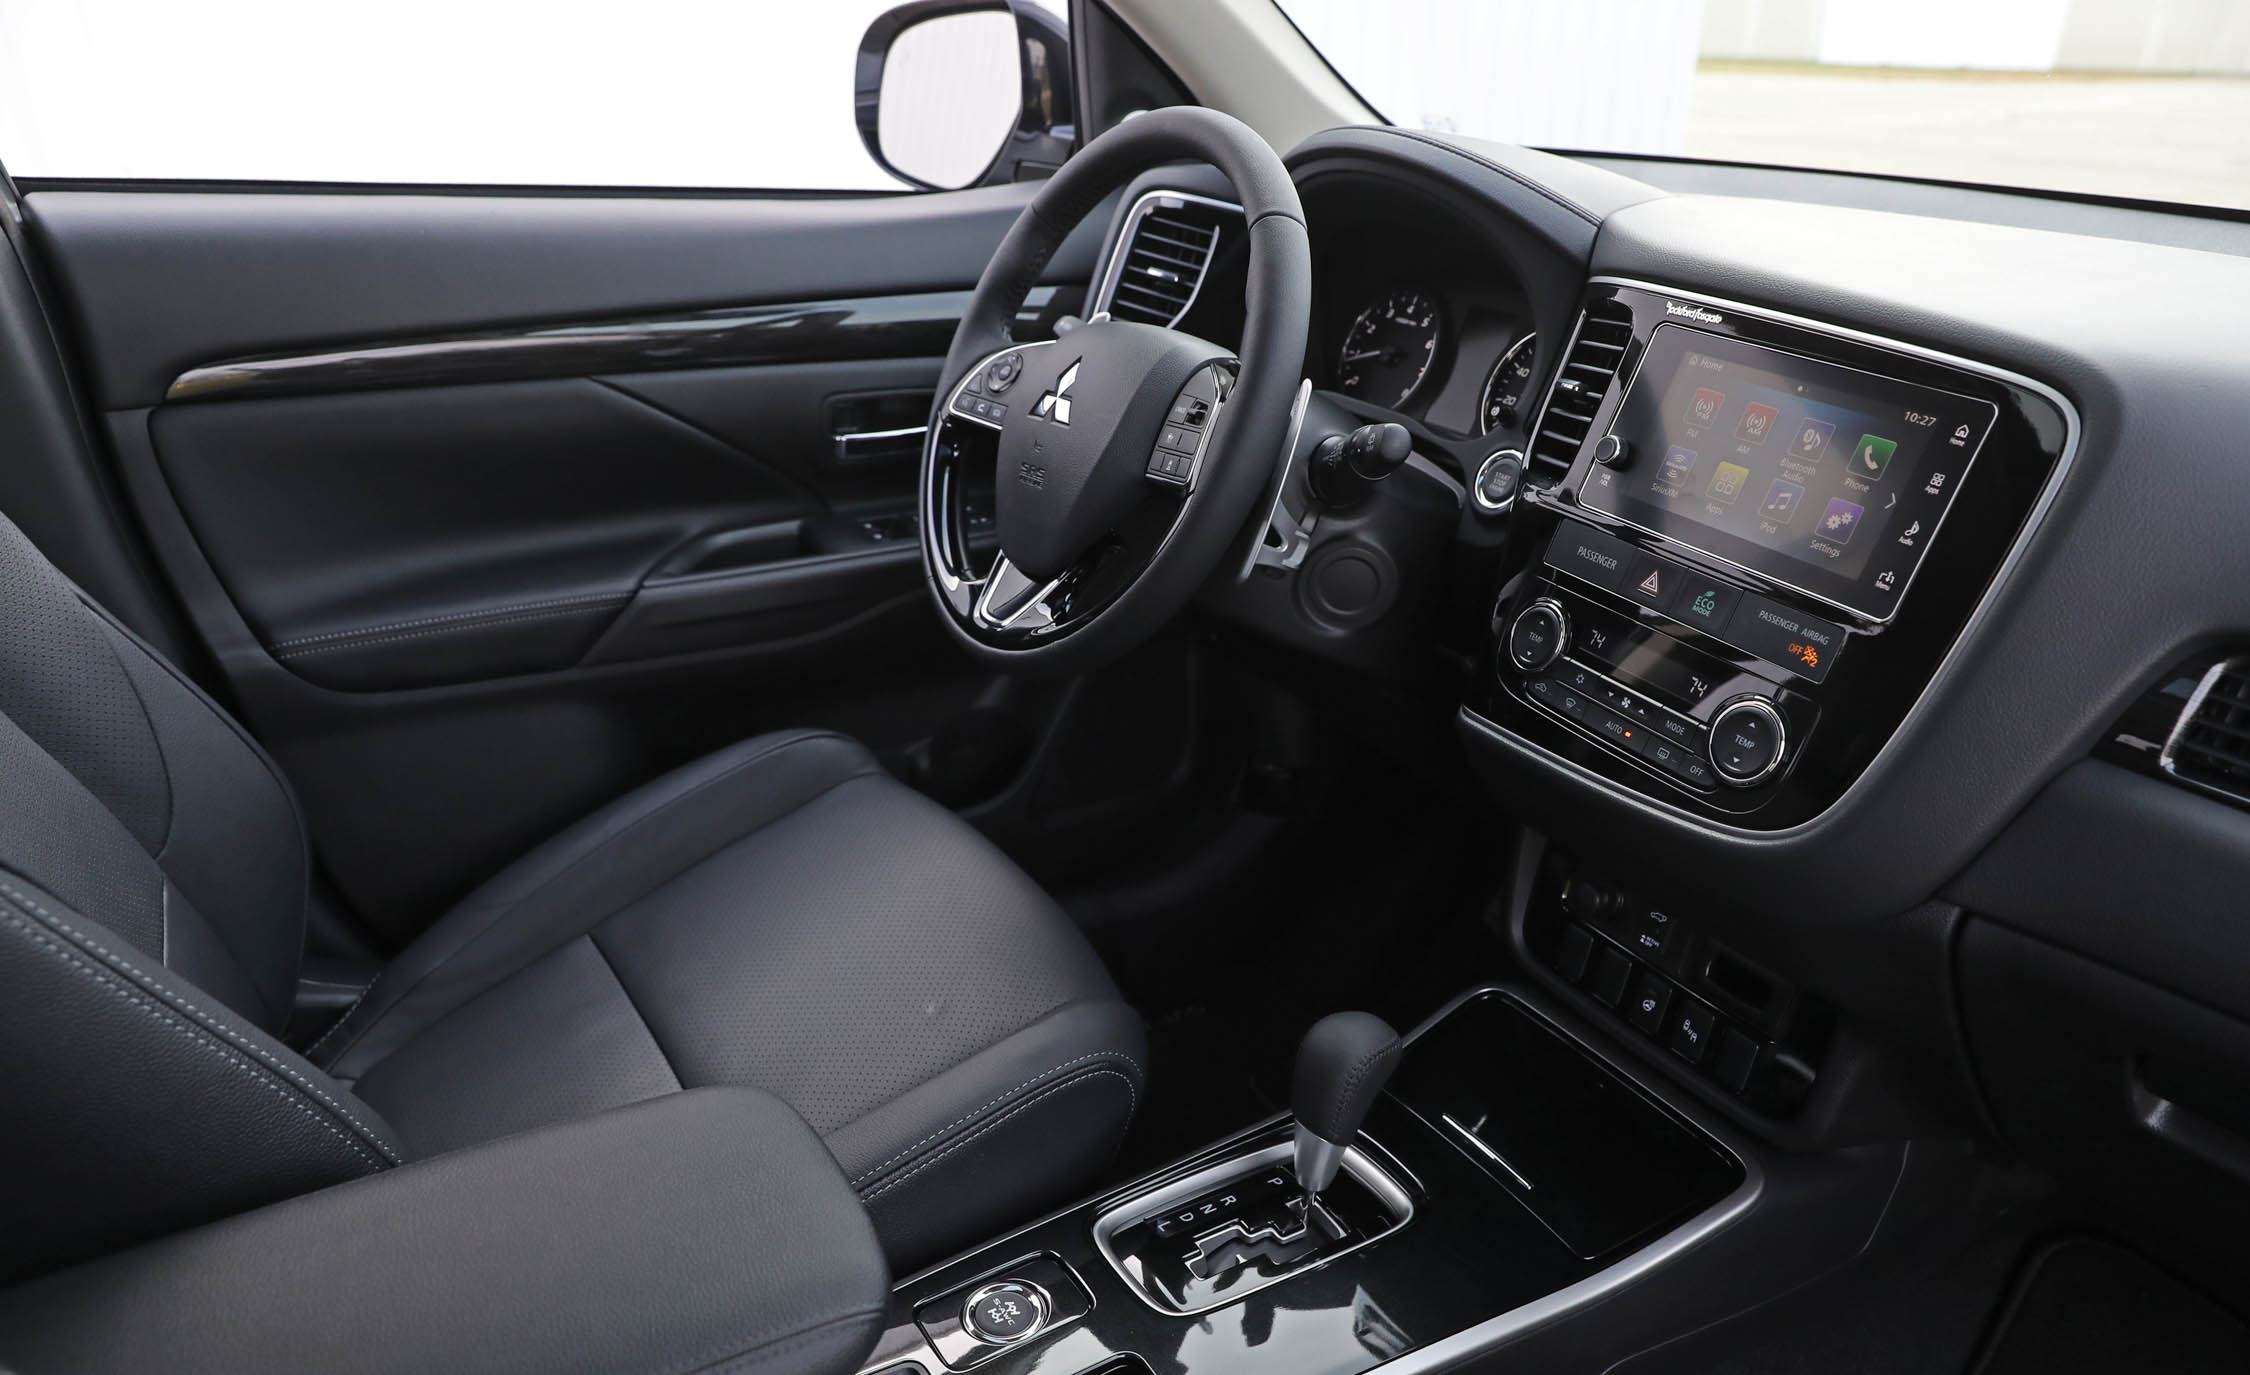 2017 Mitsubishi Outlander Gt Interior Cockpit And Dashboard (View 26 of 34)